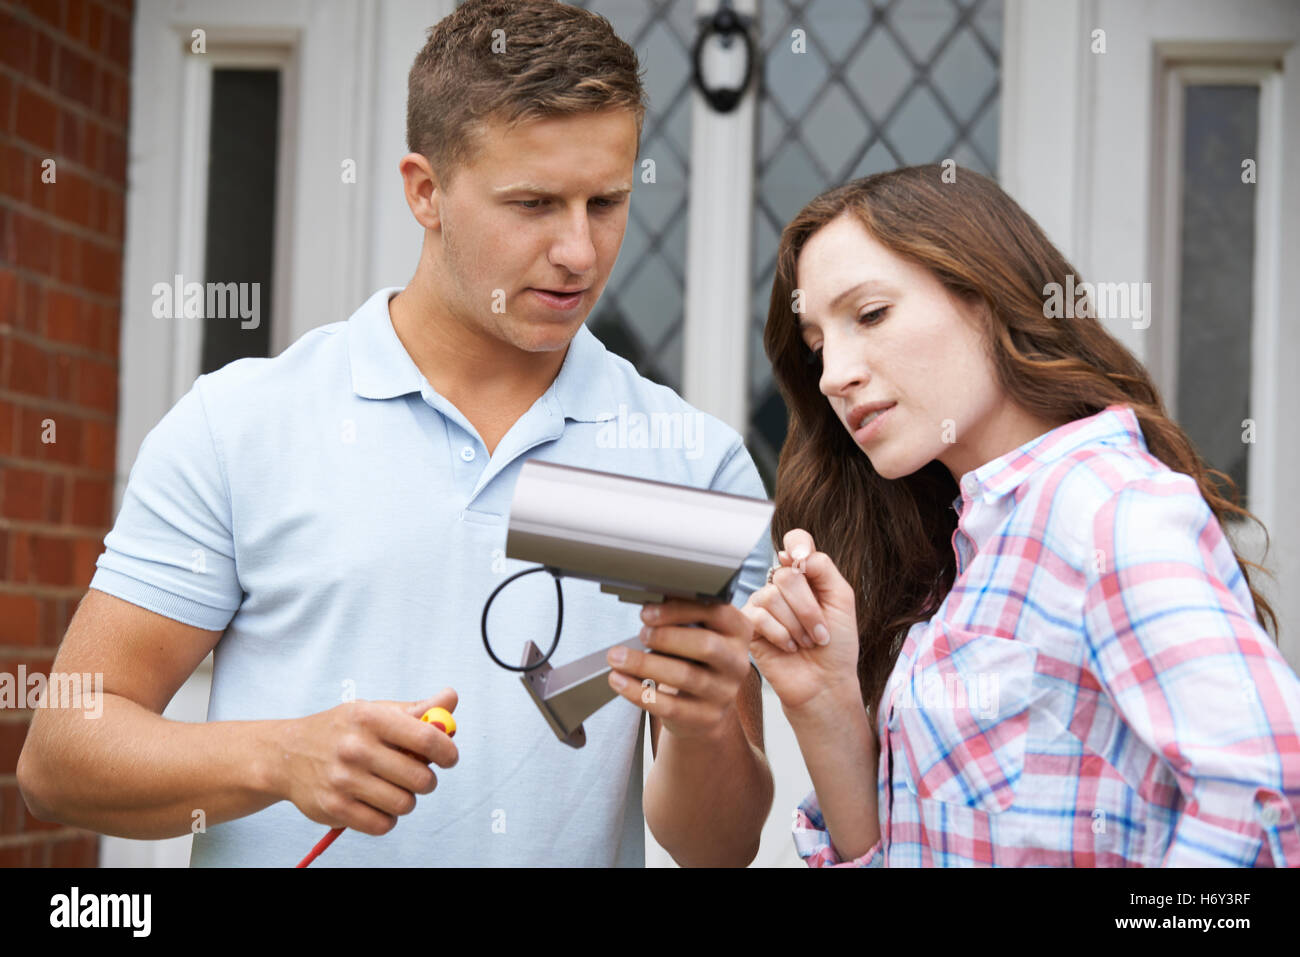 Security Consultant Fitting Camera To Outside Of House - Stock Image